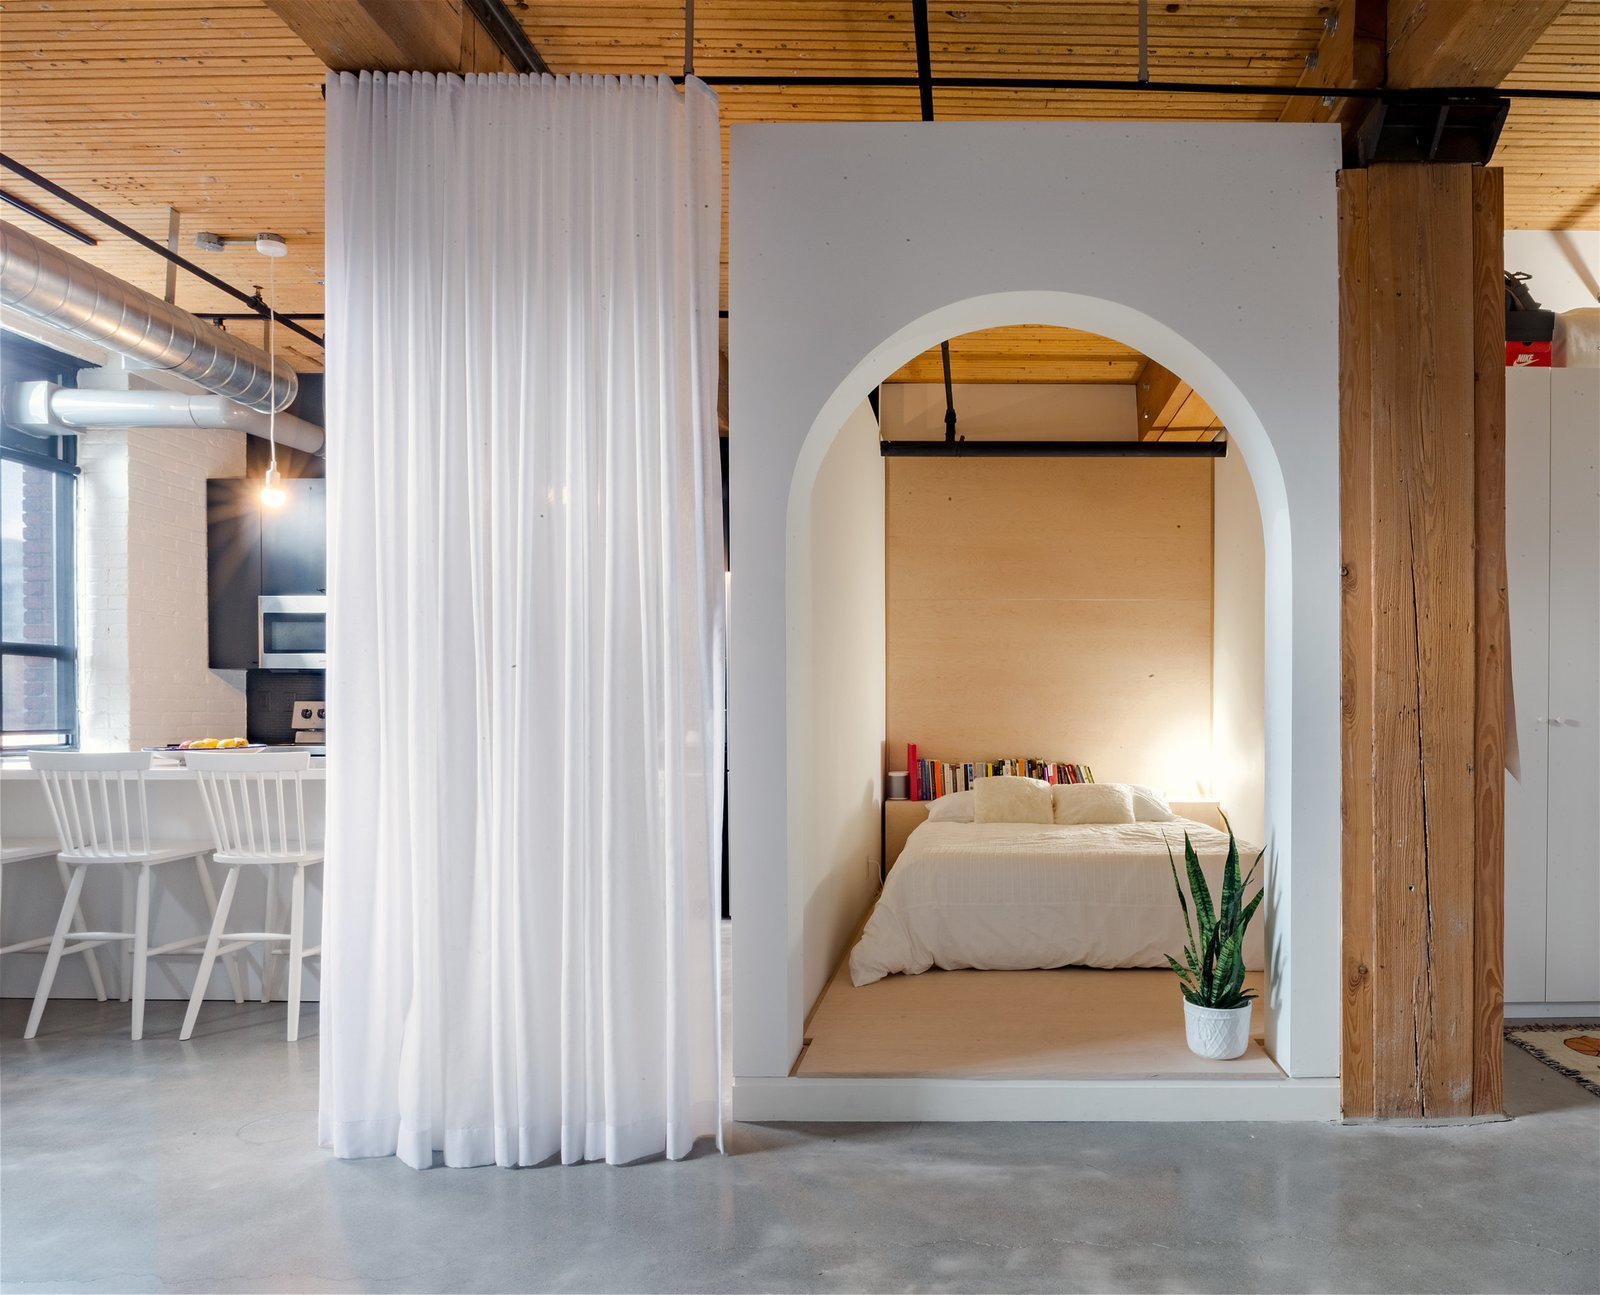 Bedroom, Table Lighting, Shelves, Lamps, Bed, and Concrete Floor This small, L-shaped apartment by Studio AC has a bed box with an arched doorway with white walls and plywood finishings.   Photo 8 of 11 in Behold, the Bedroom Box: 10 Small-Space Sleeping Nooks from Broadview Loft